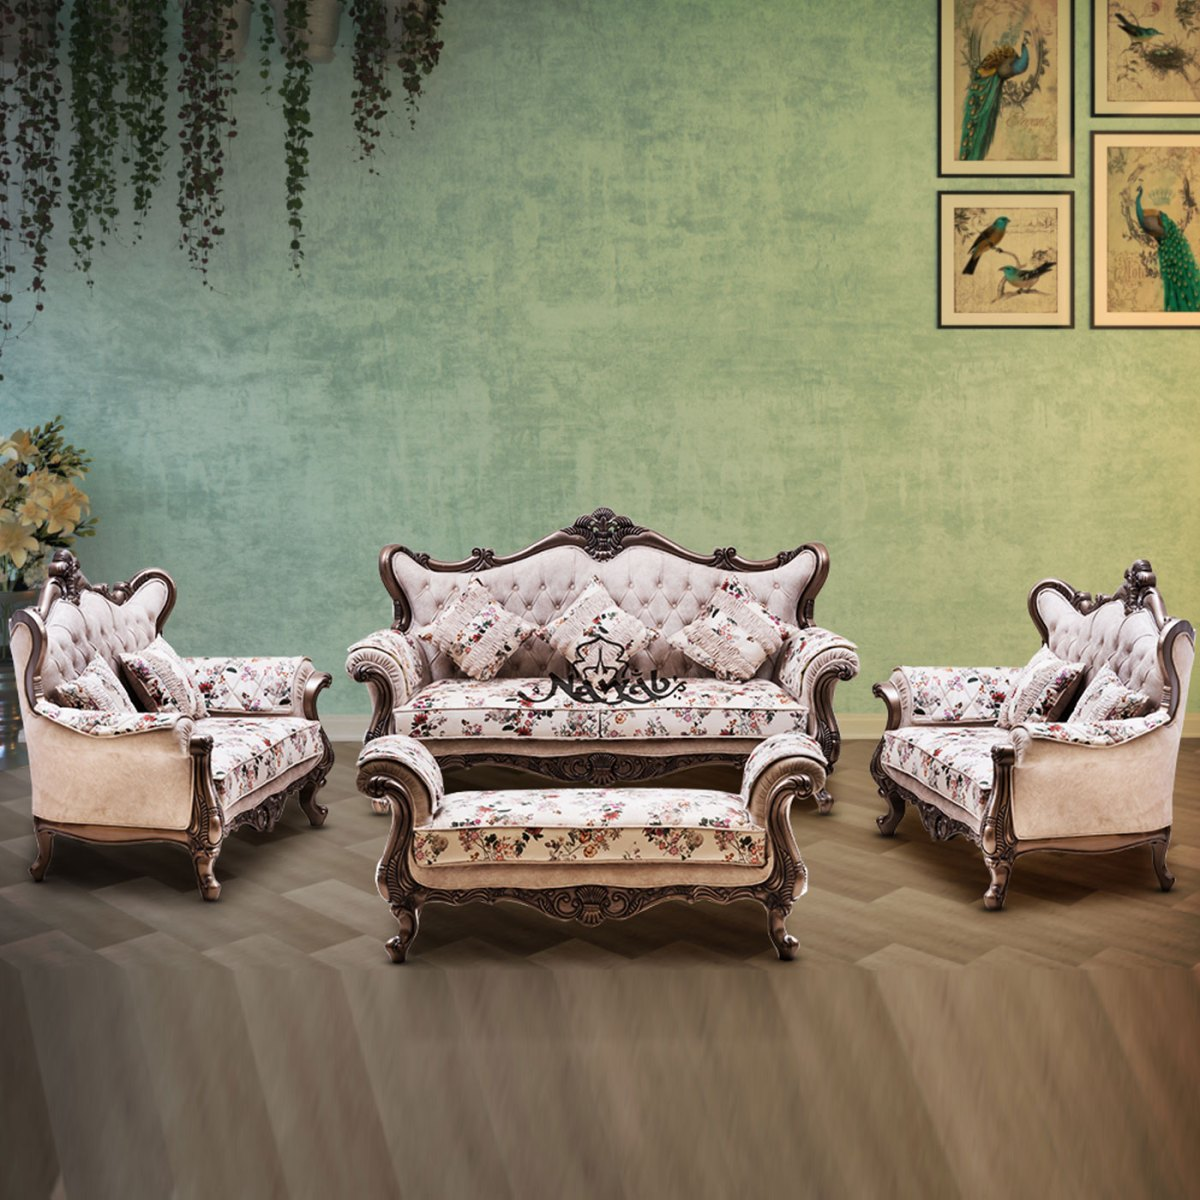 champagne polish suede velvet with print combination upholstery handcarved